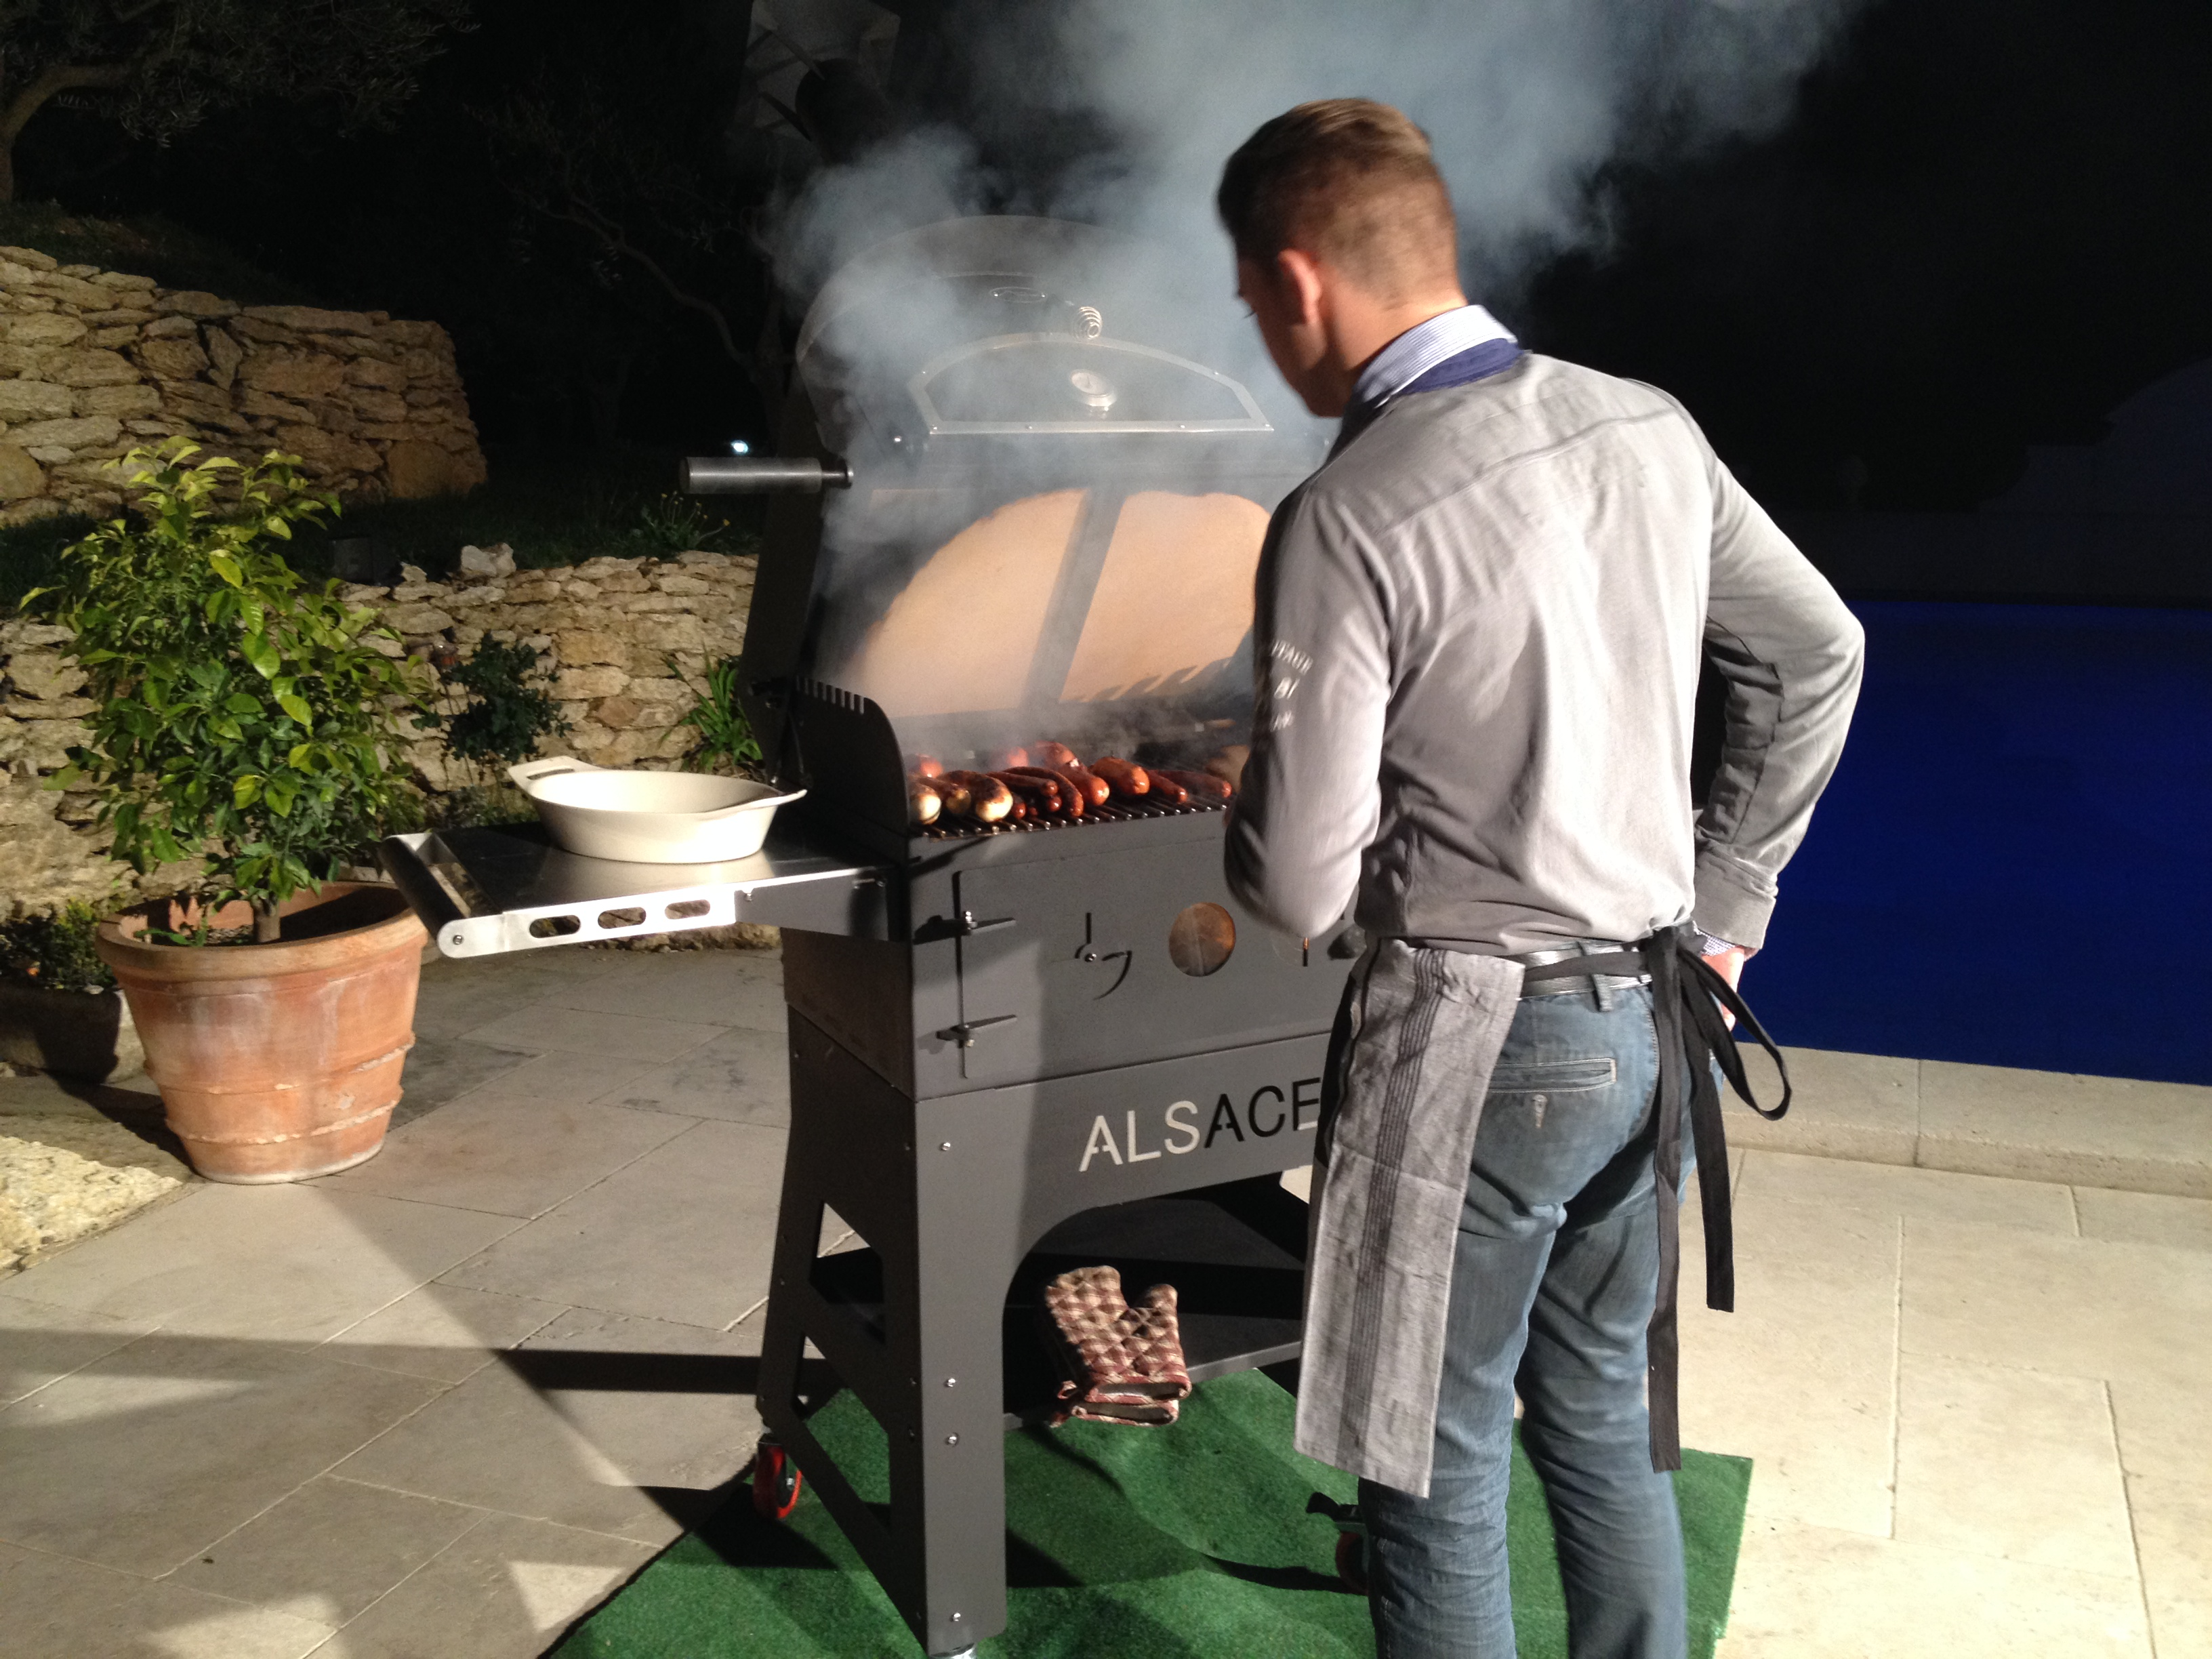 Alsace, outdoor wood-fired oven/grill in grilling position